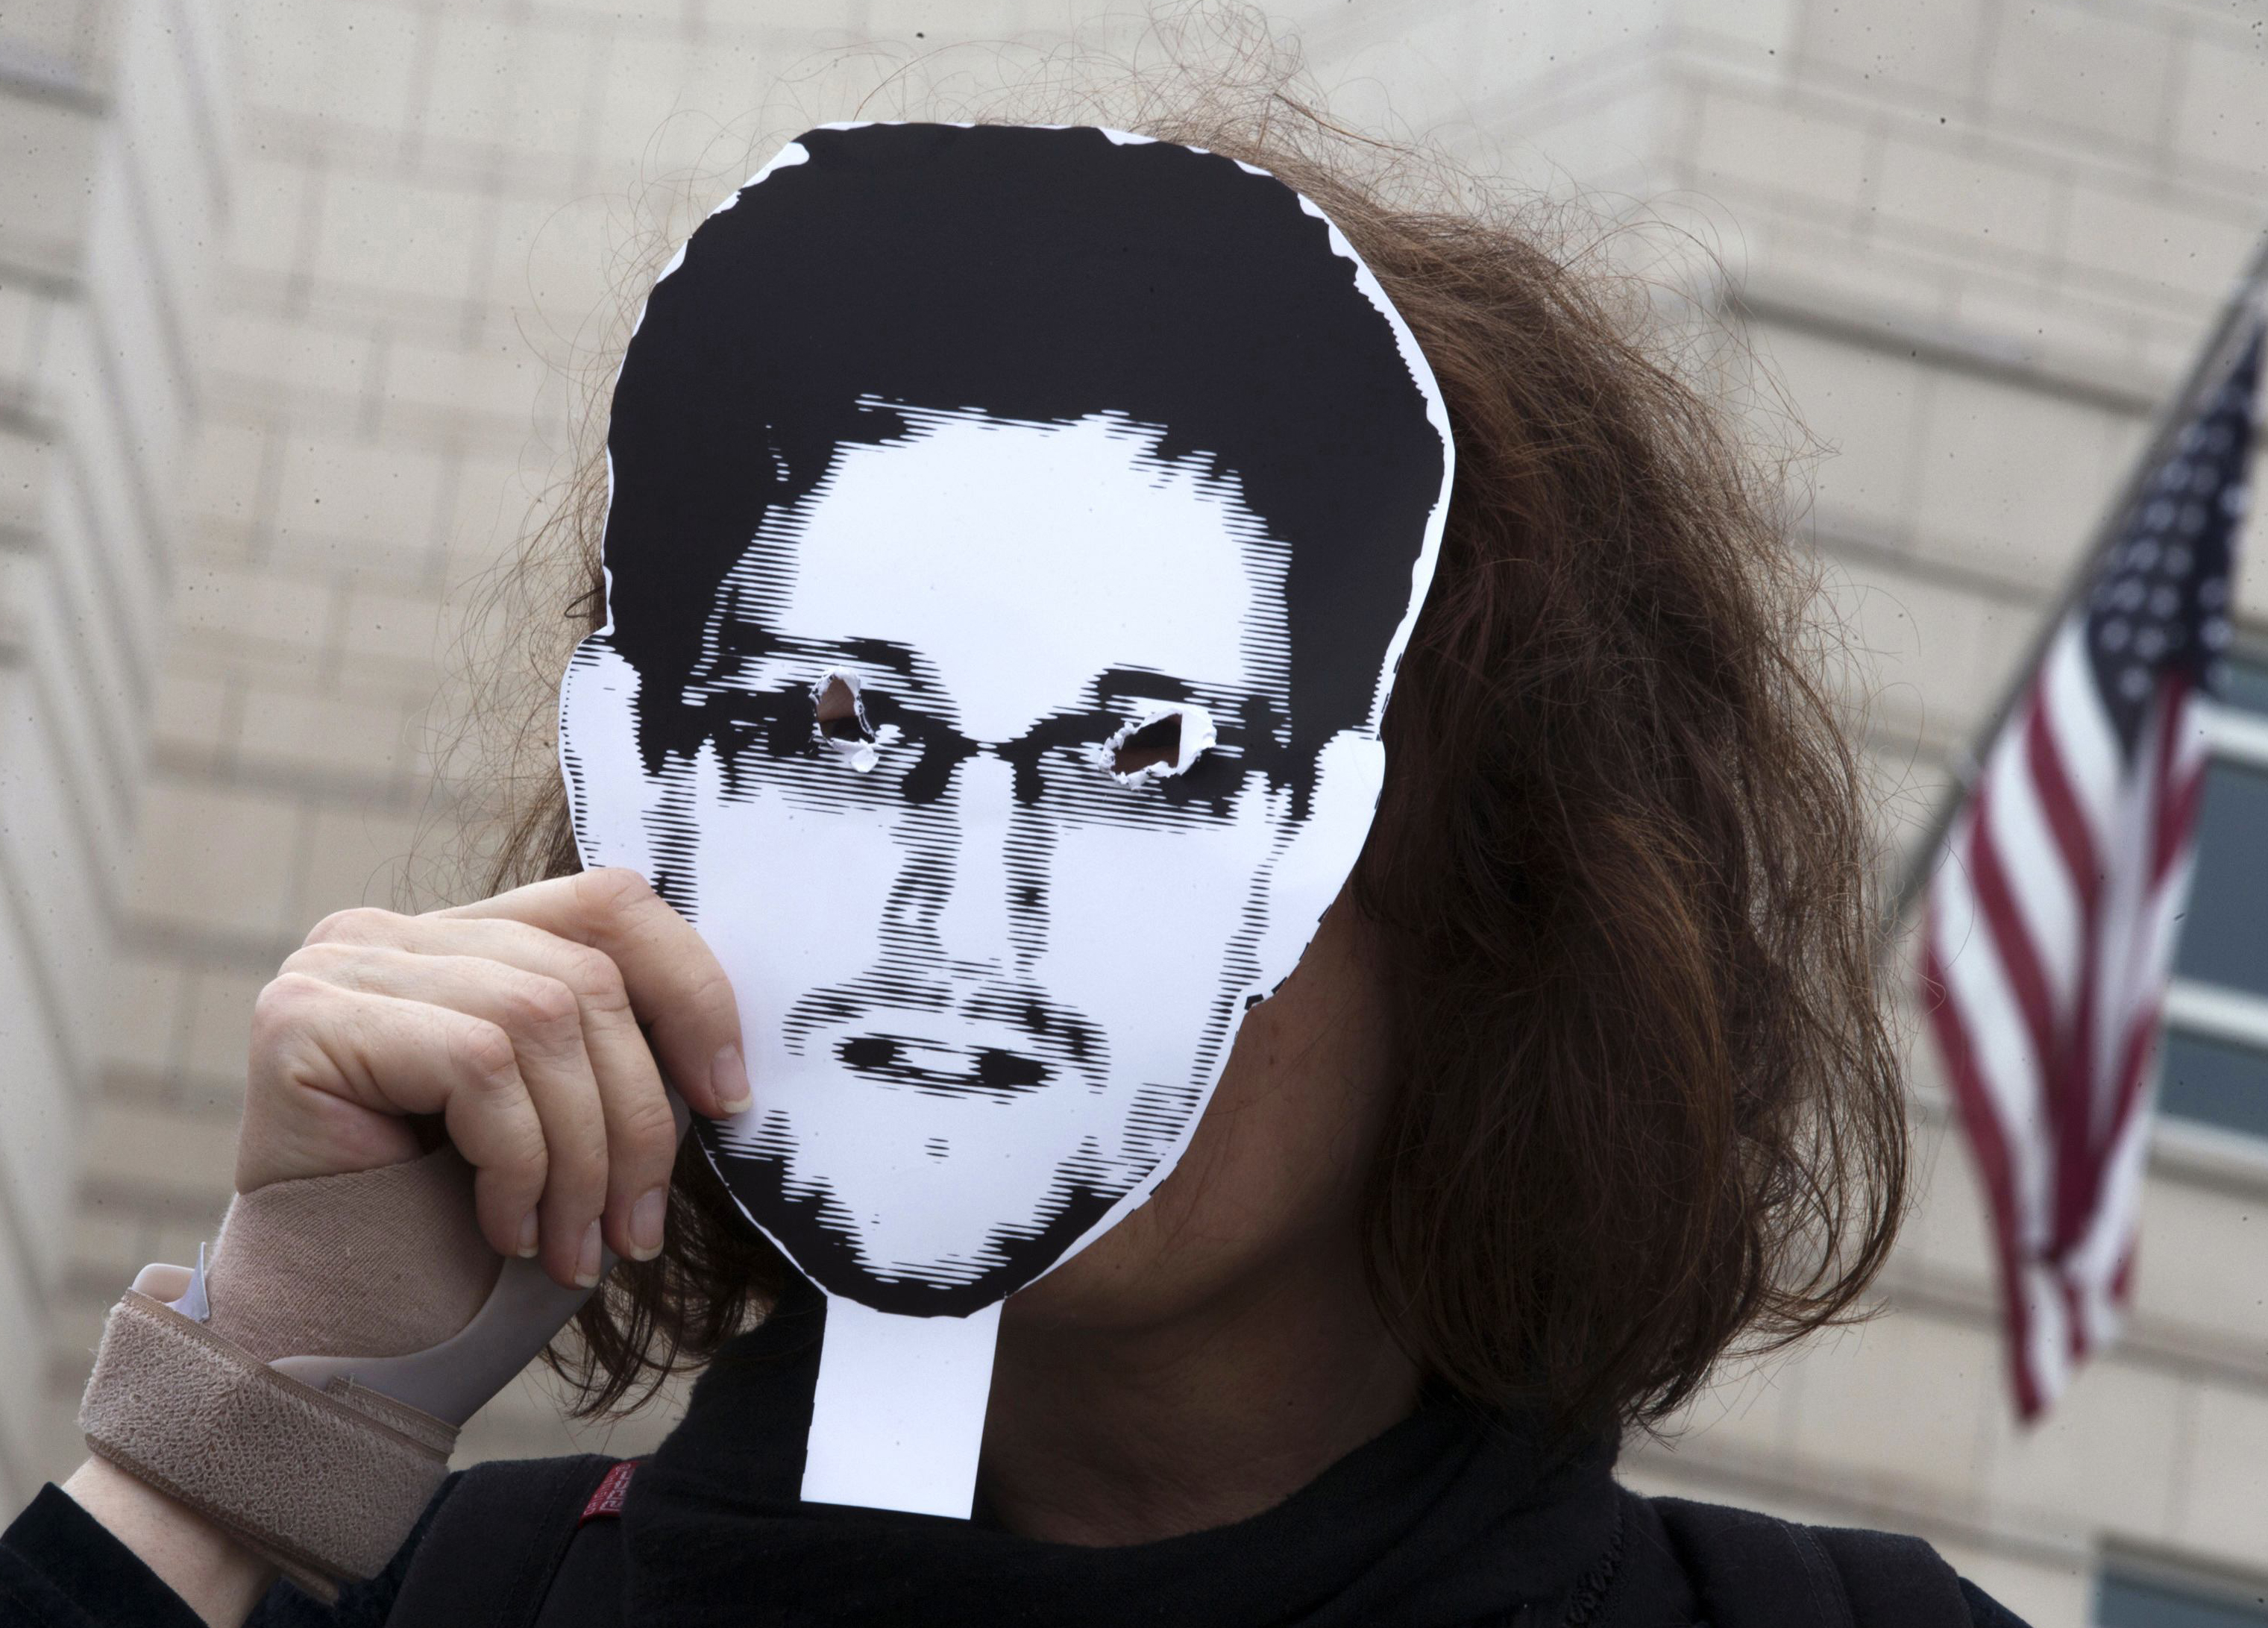 What Snowden really revealed: We have sacrificed our freedoms and morals in order to make war on those abroad, and, more subtly, on ourselves